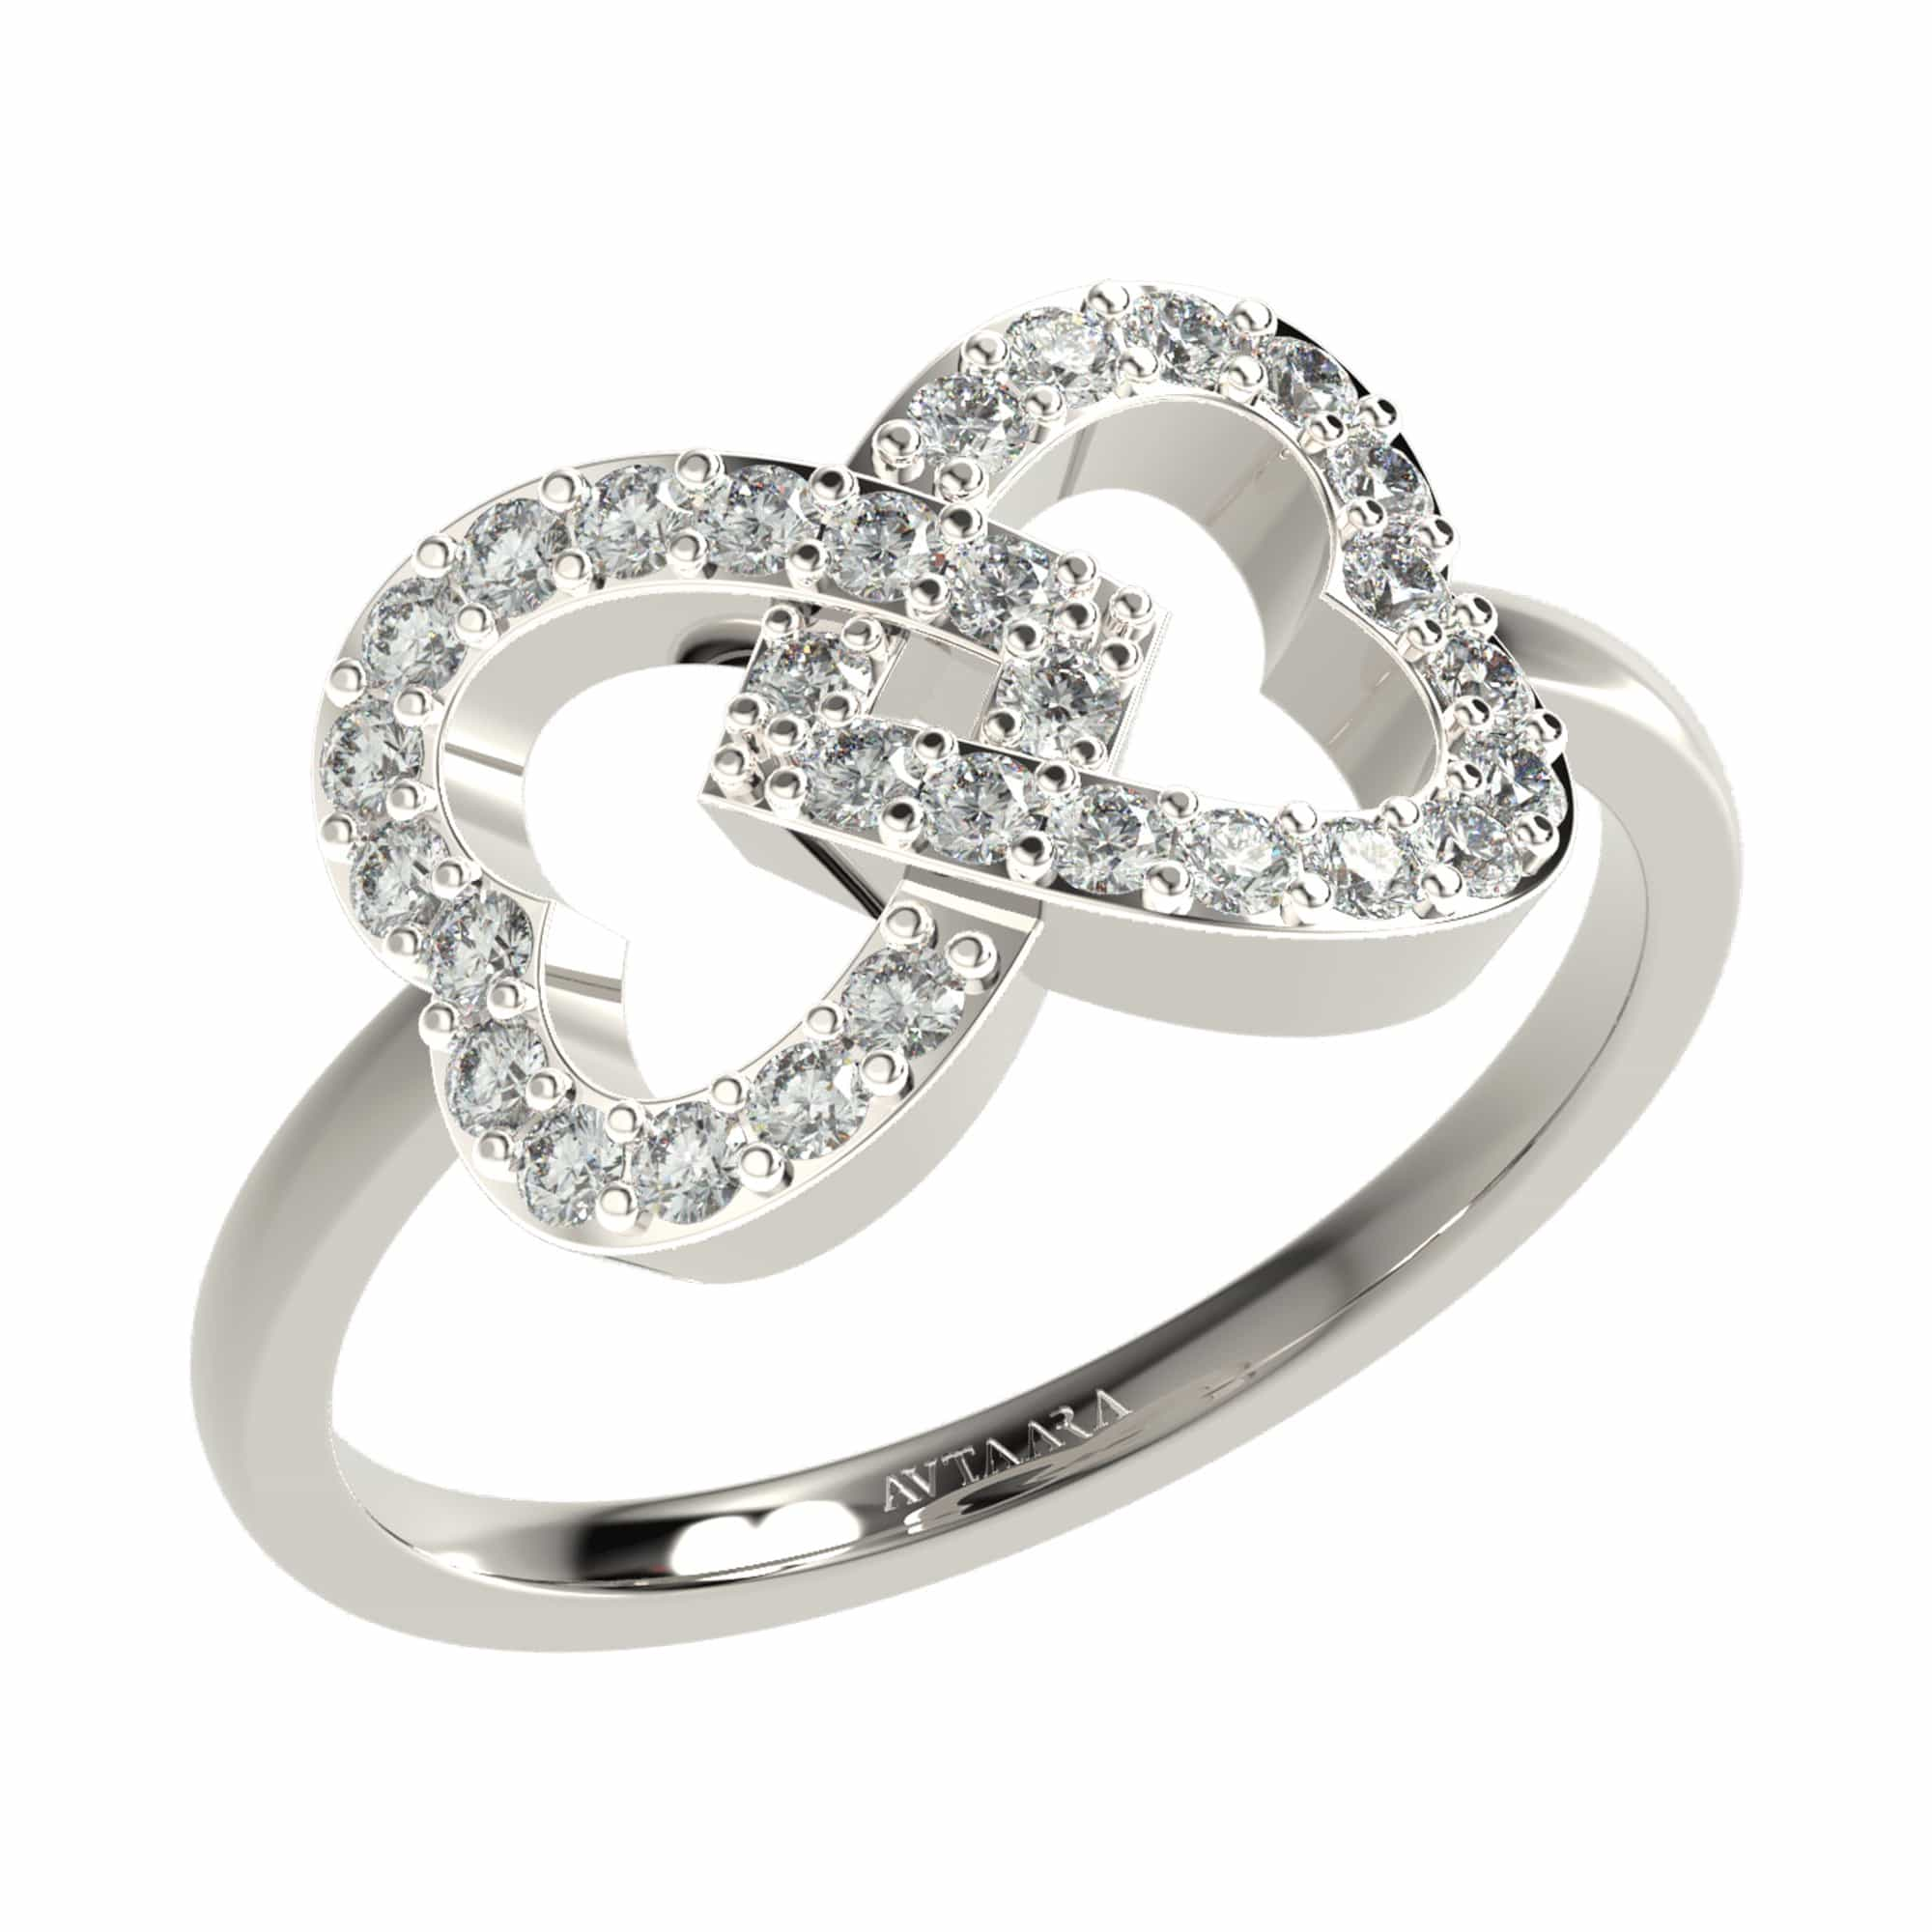 Entwined Love Ring